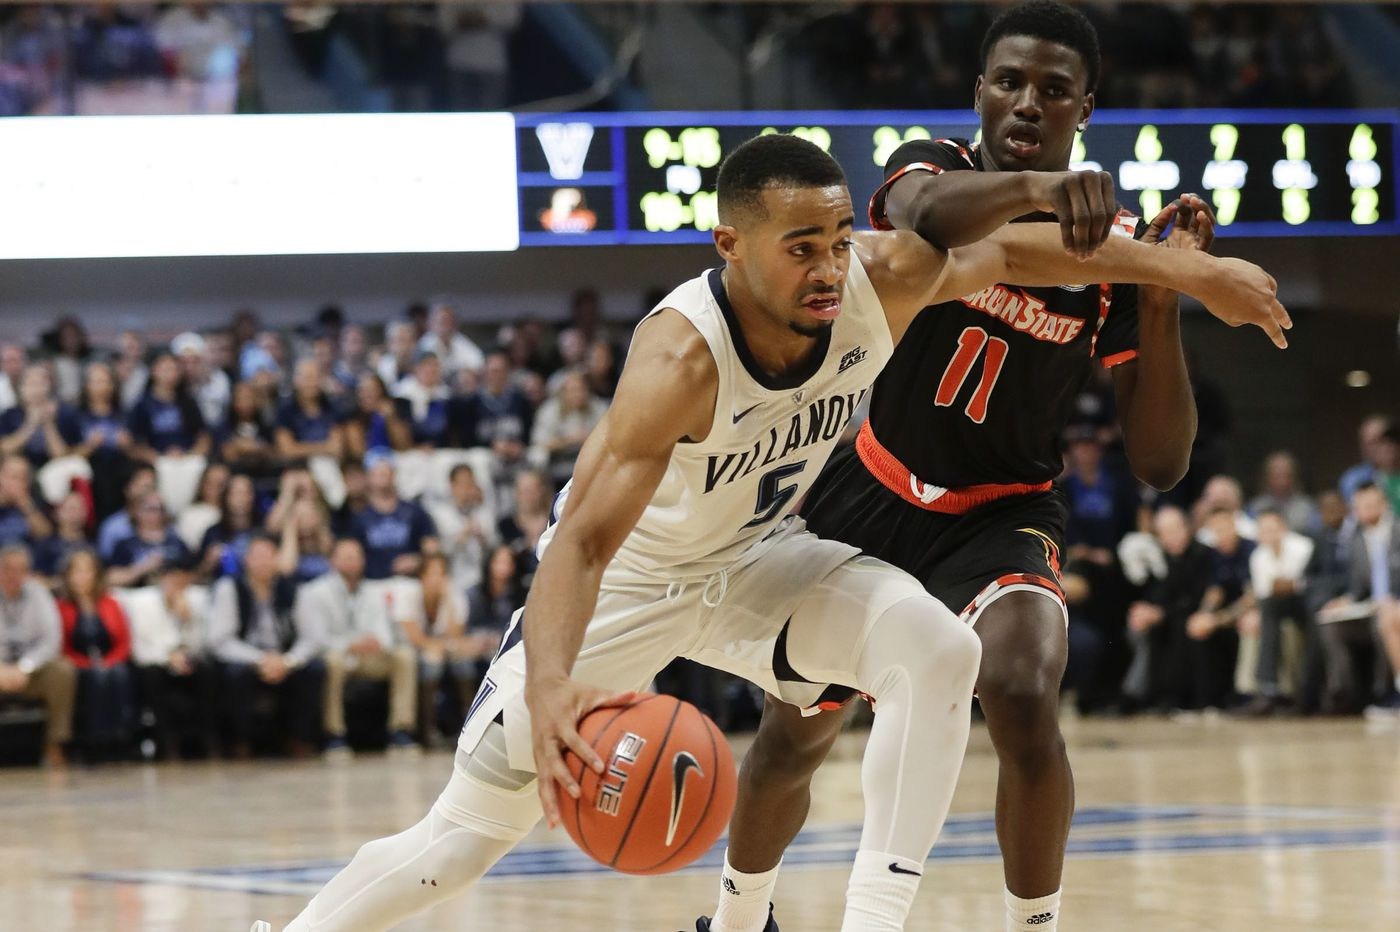 Villanova opens renovated arena by beating Morgan State, 100-77